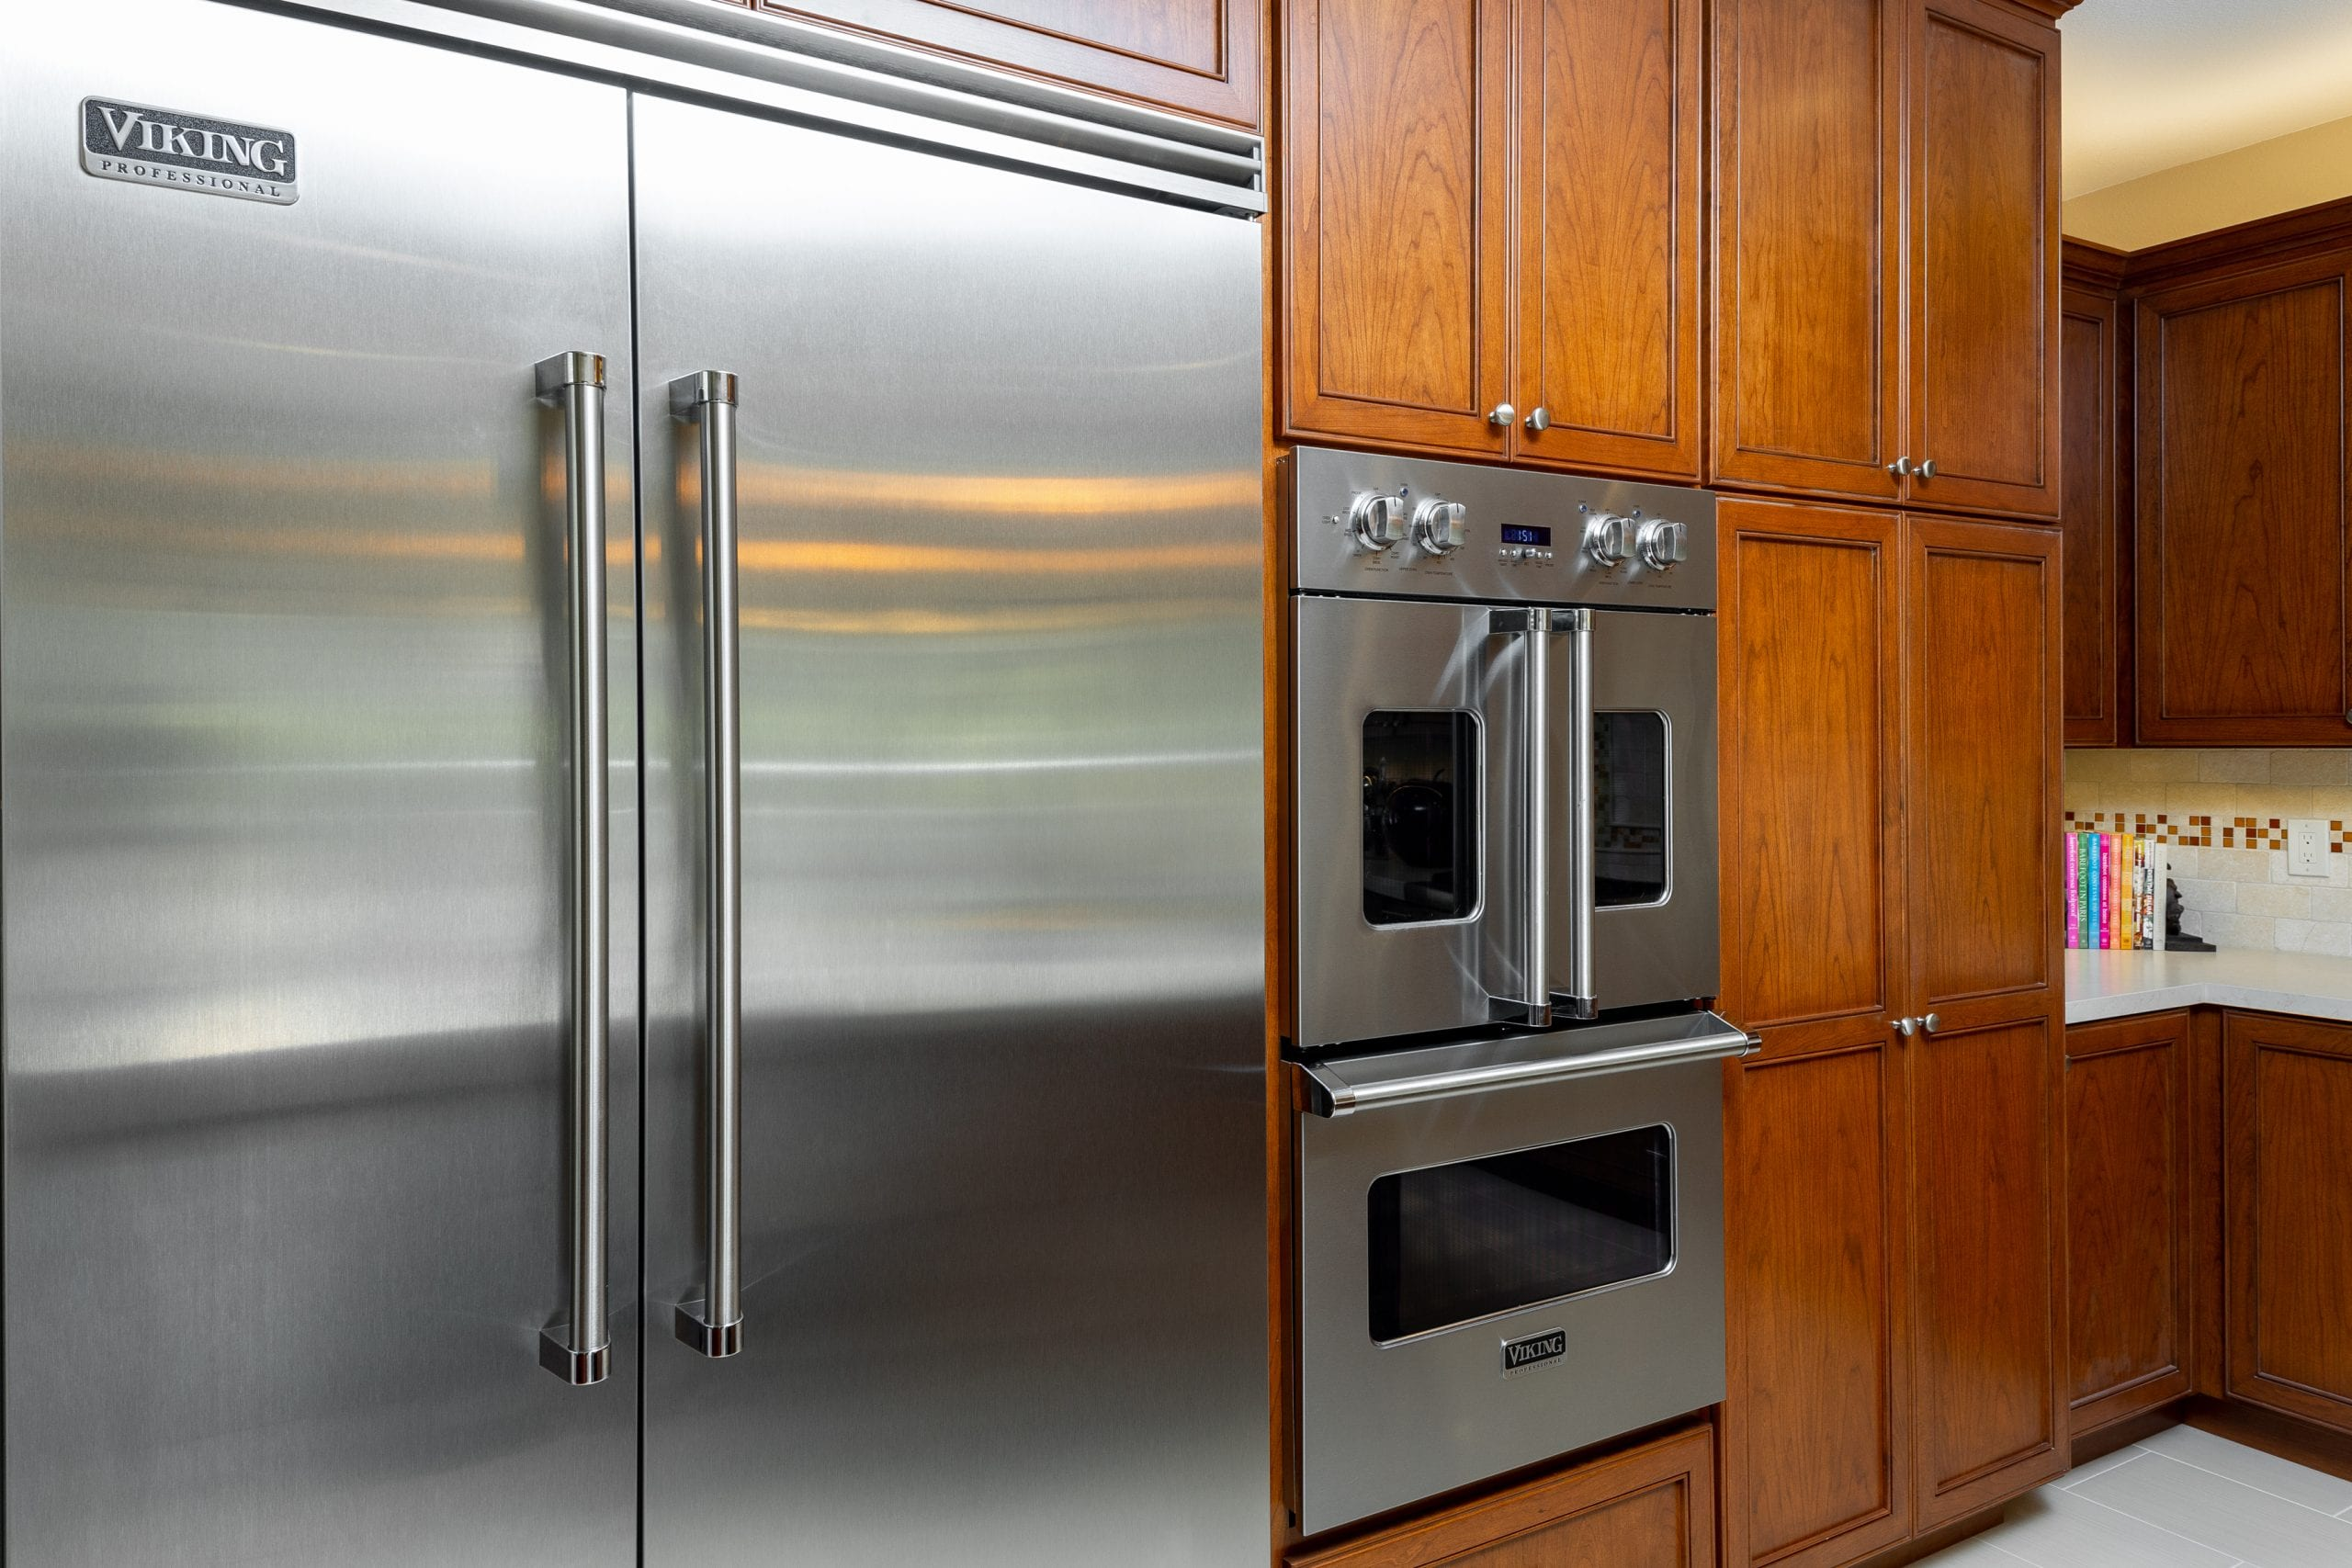 Stainless steel refrigerator next oven embedded into cabinet wall